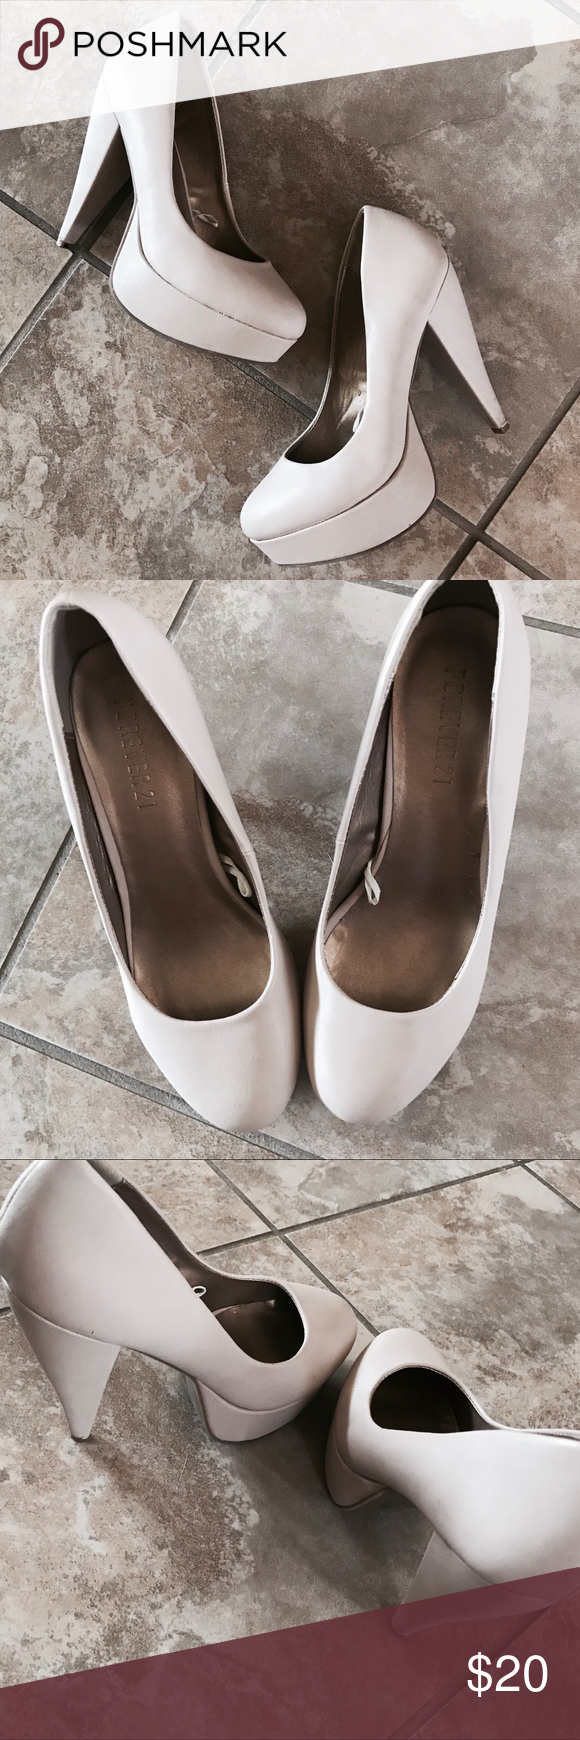 Looking for the Perfect Wedding Shoes? Well Take One of